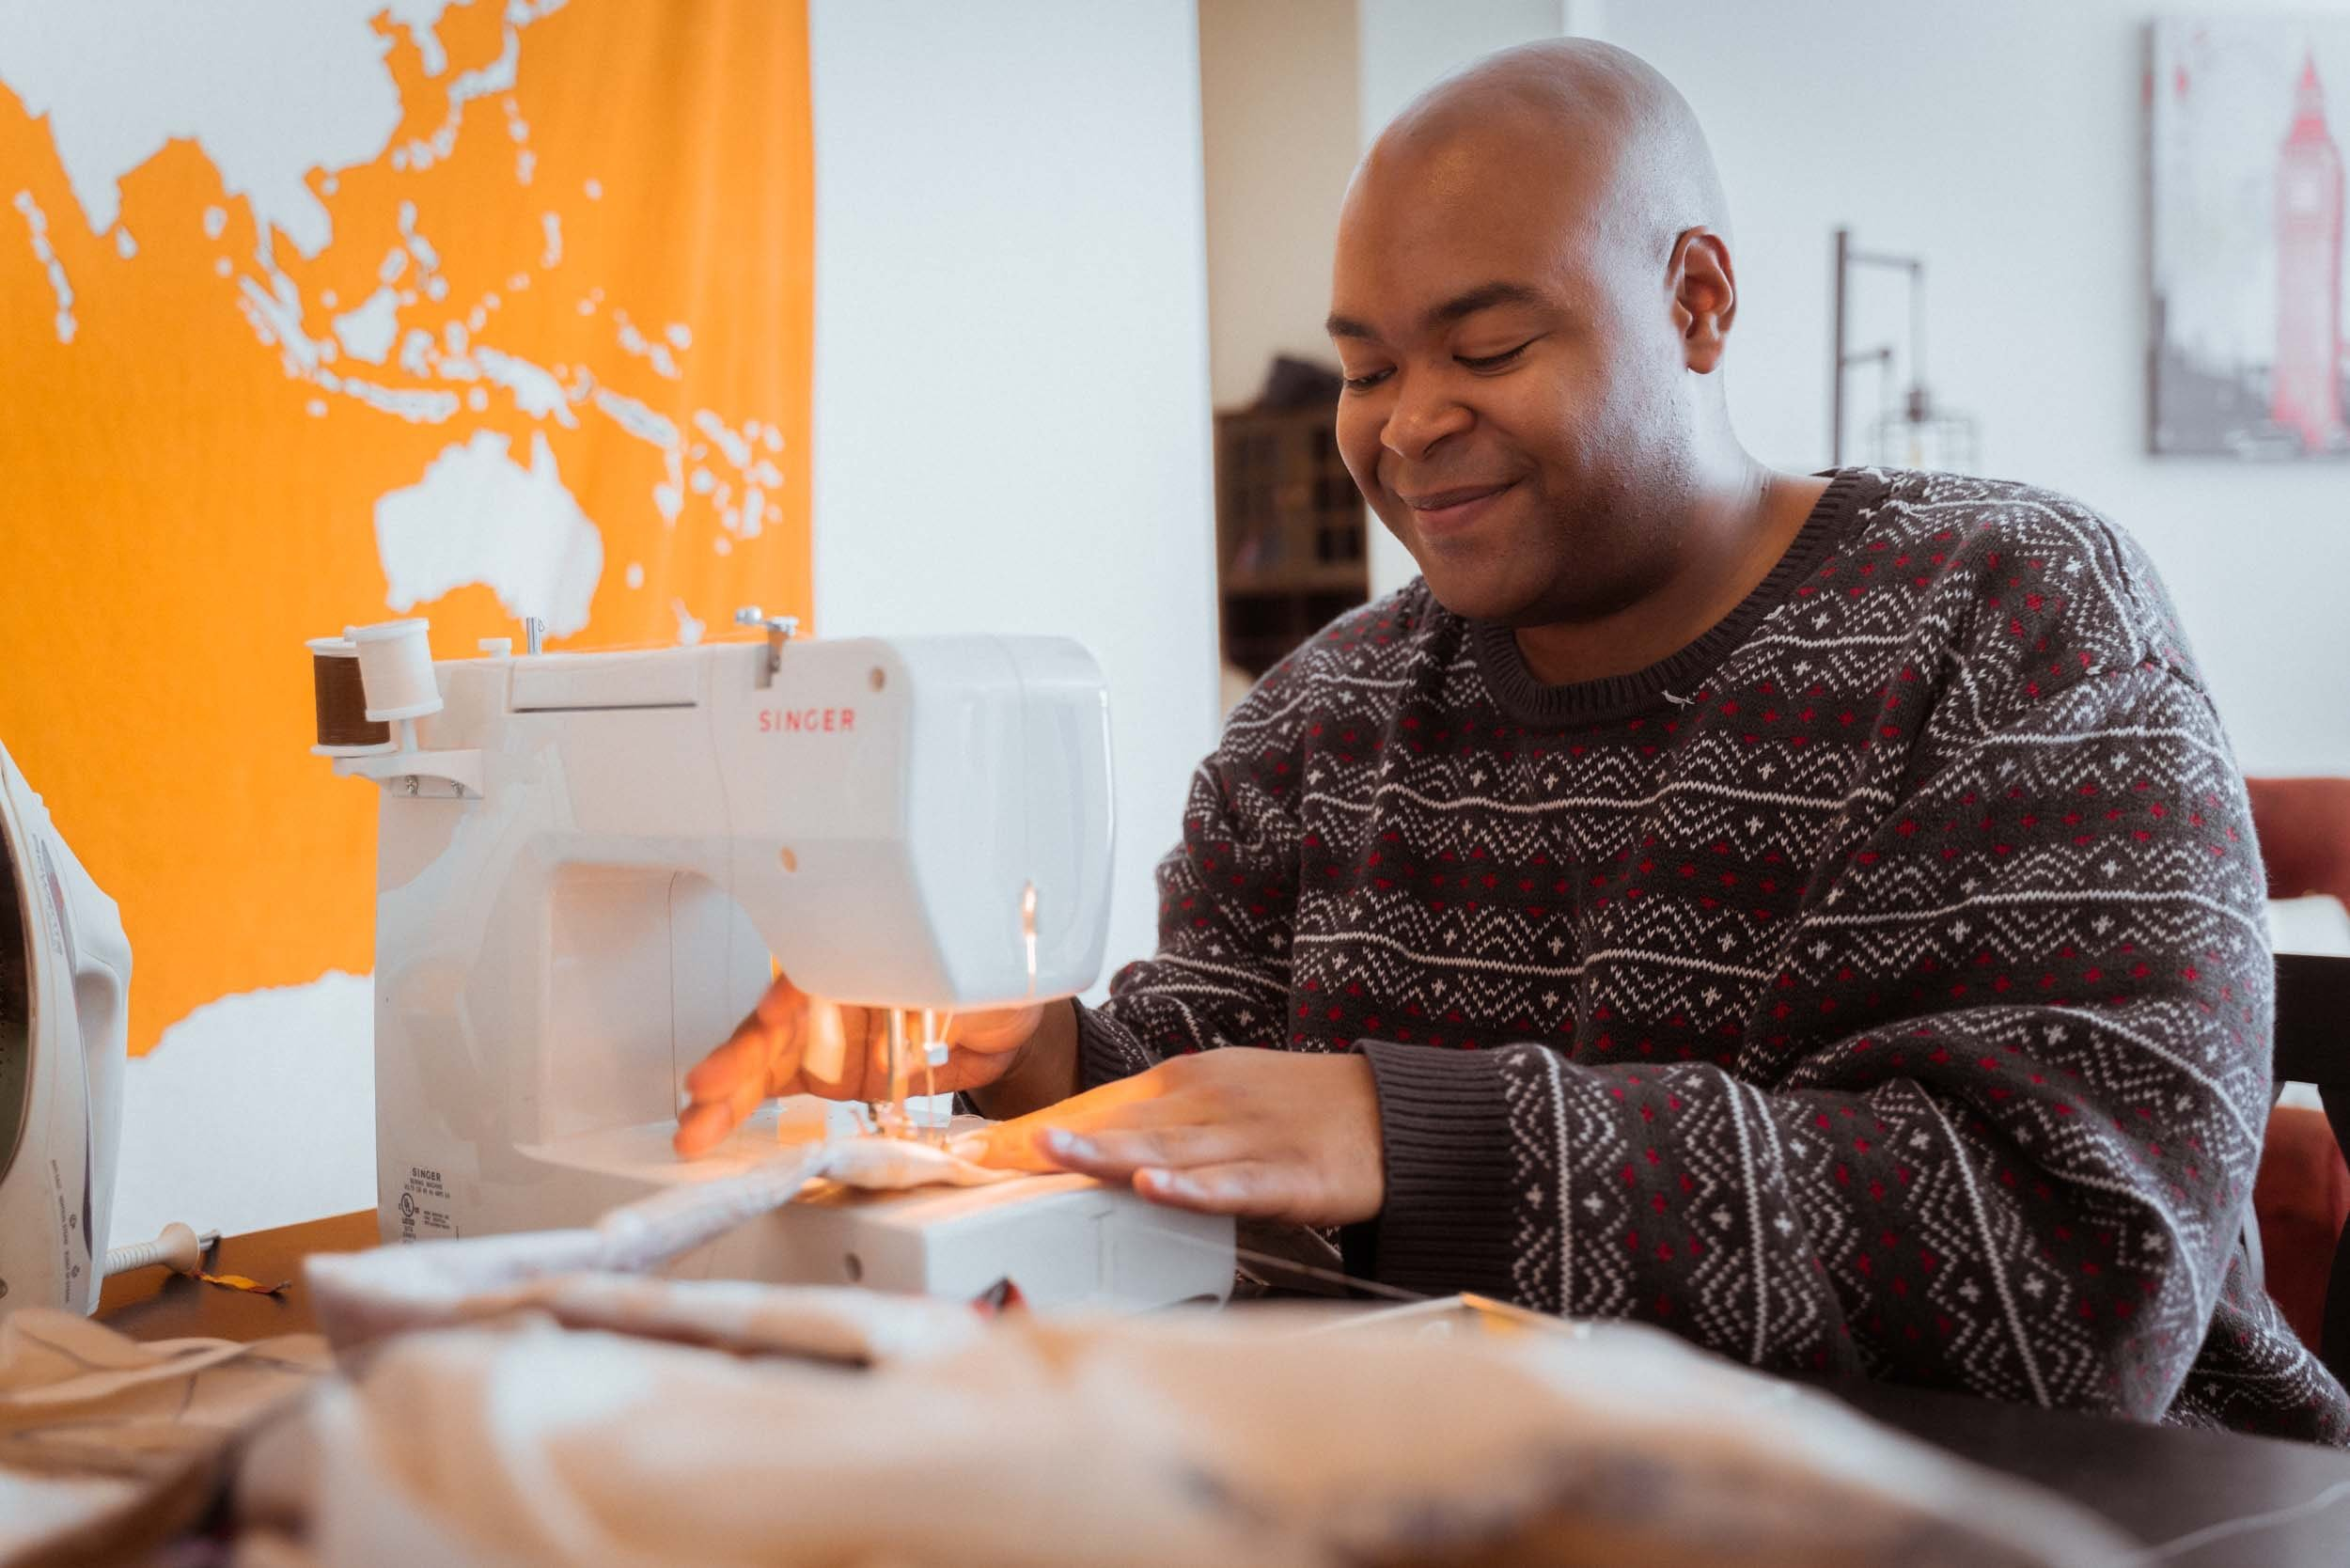 Pictured - A black dressmaker working on a sewing machine | Source: Pexels